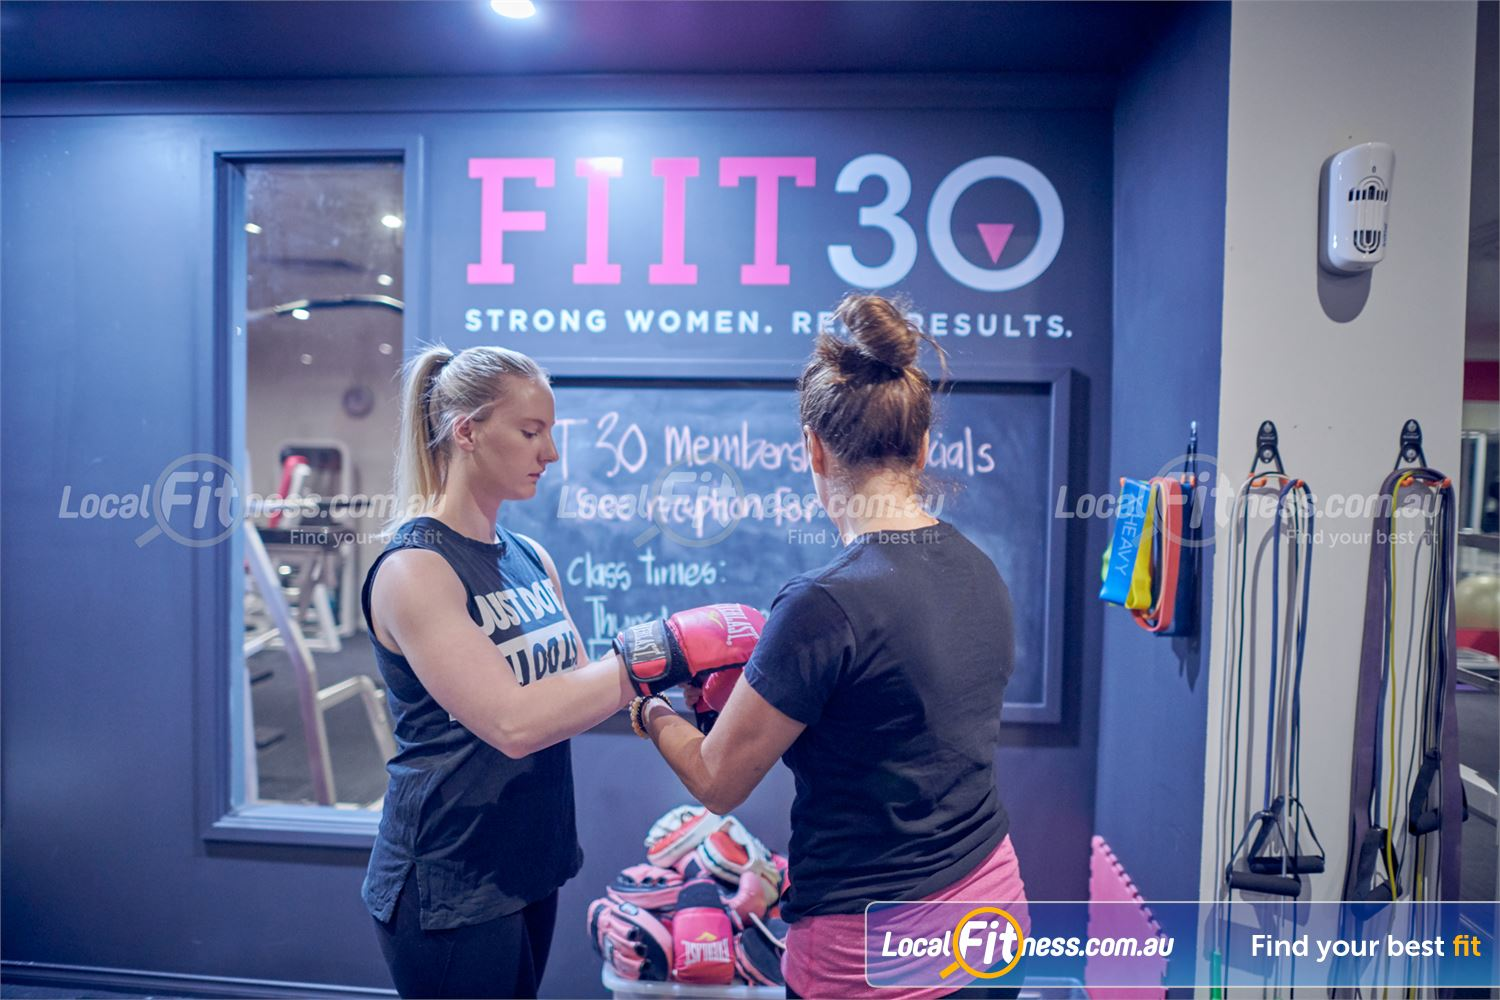 Fernwood Fitness Bulleen Fernwood FIIT 30 in Bulleen build strong women with real results.